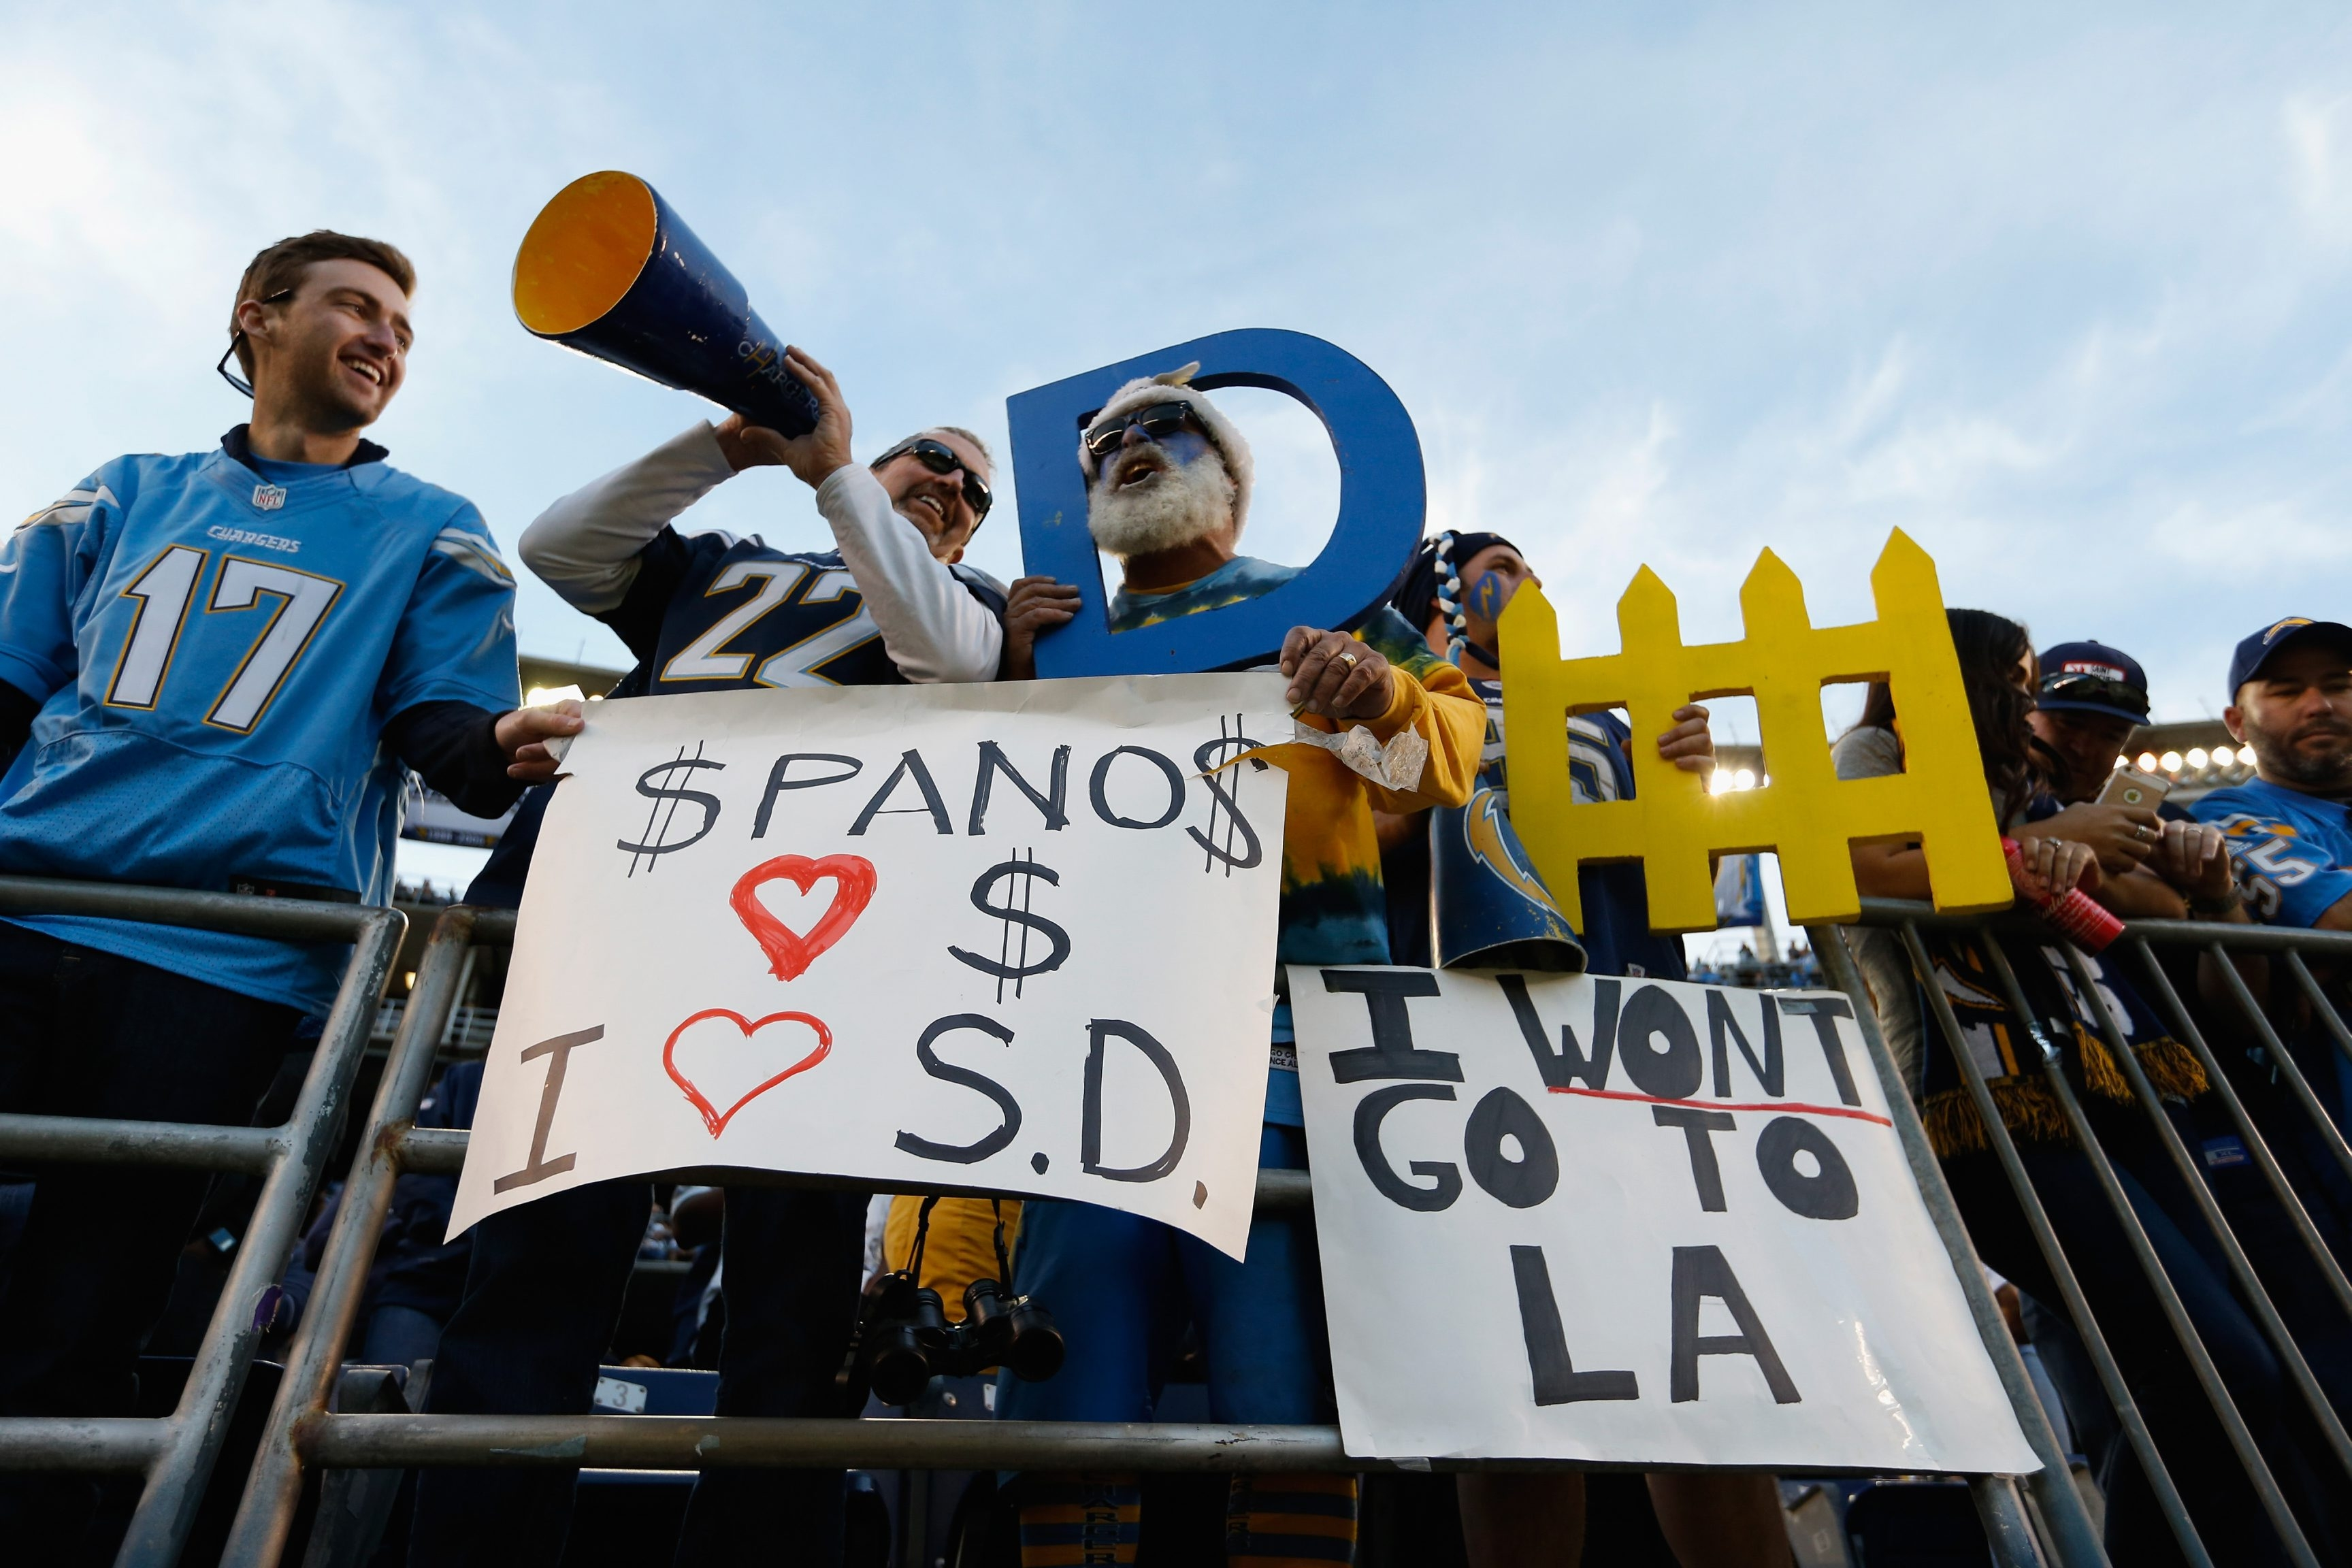 San Diego Chargers fans will have at least one more season to cheer on their team, but will it be more?